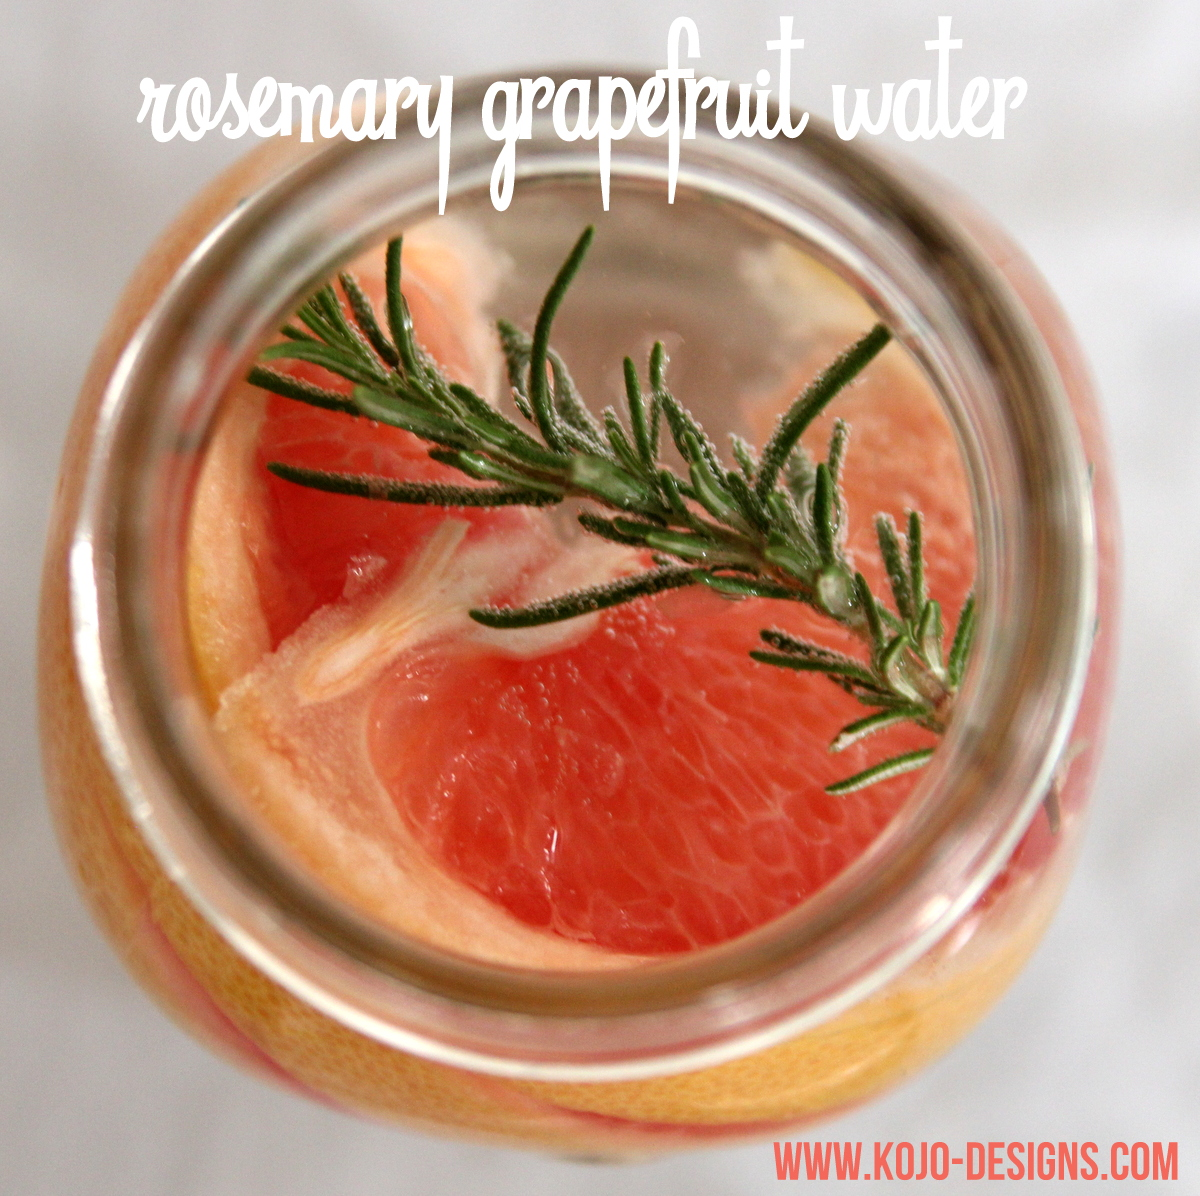 7. Rosemary & Grapefruit